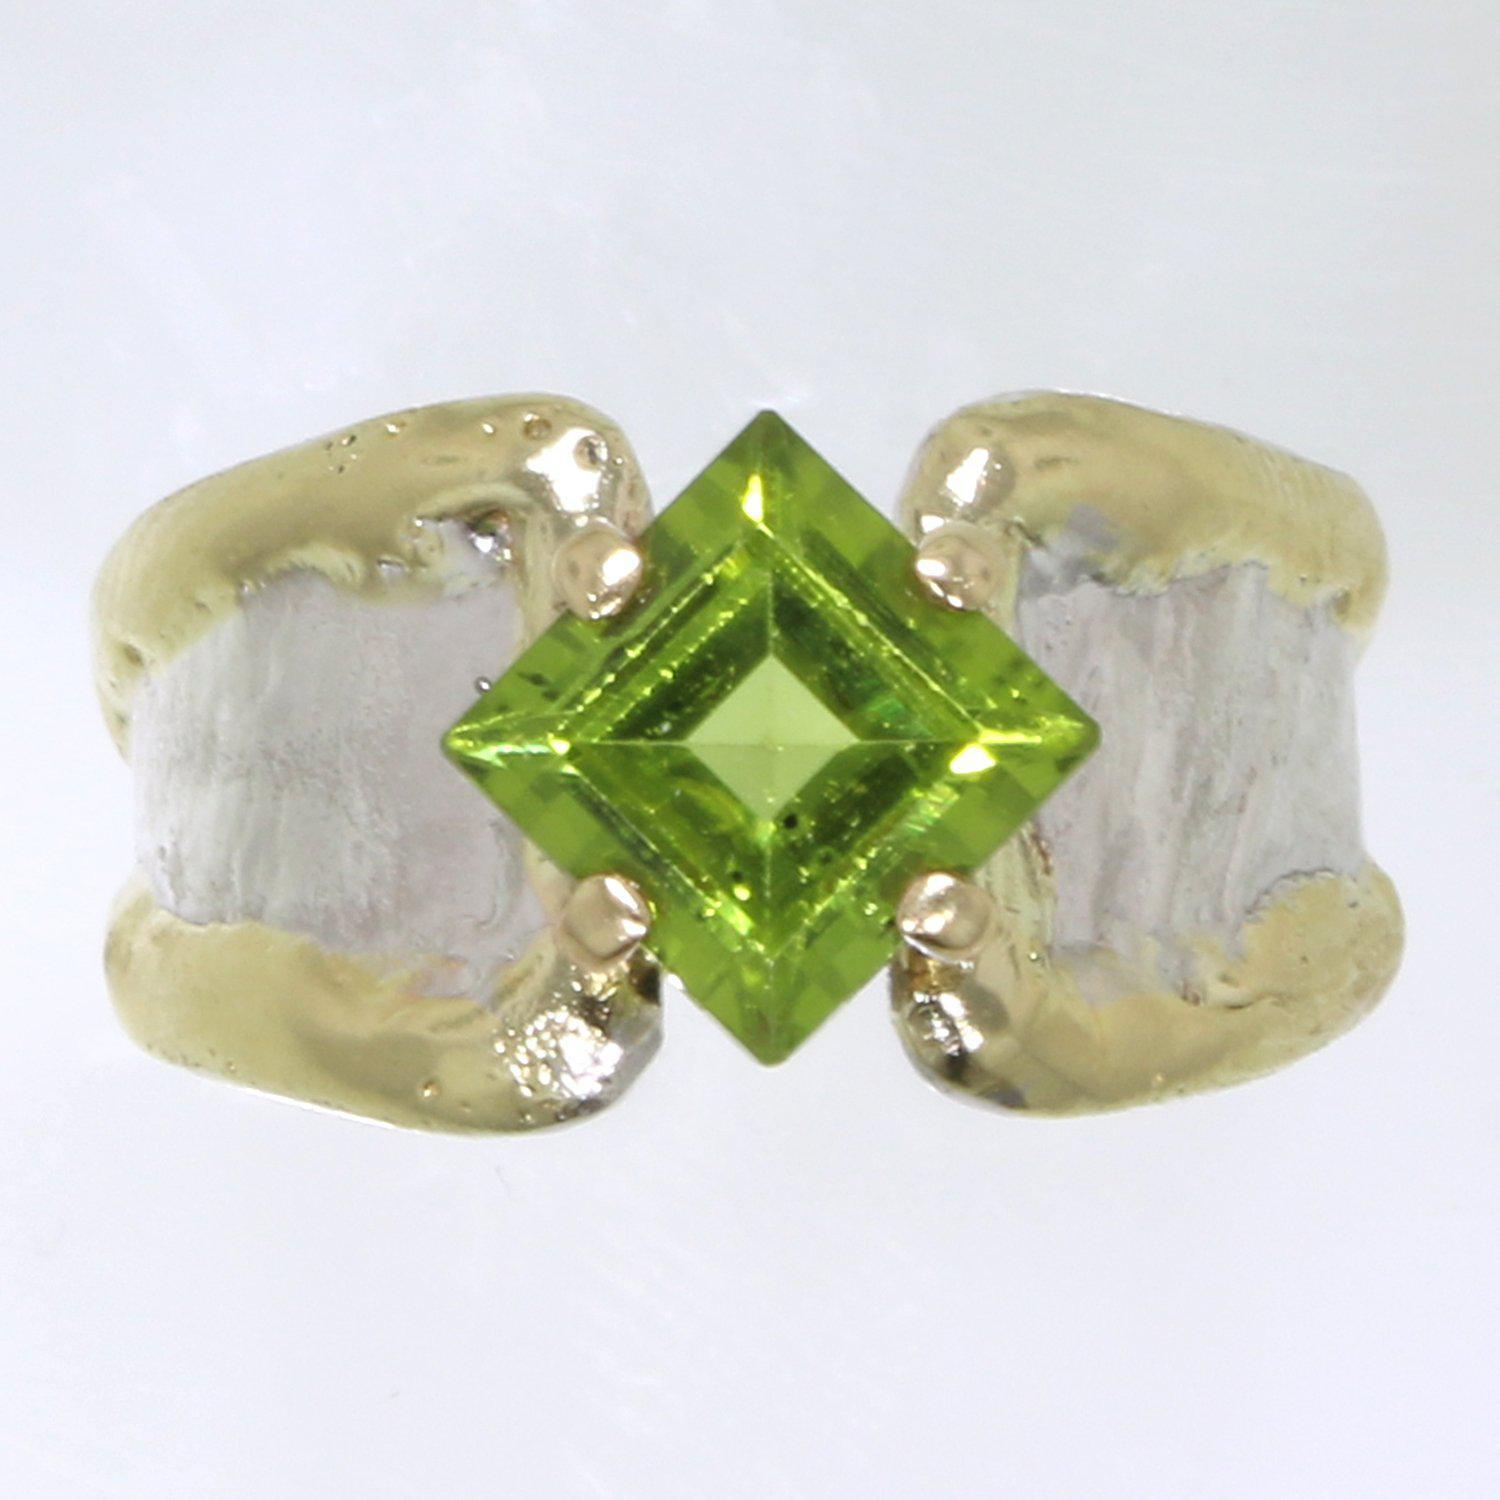 14K Gold & Crystalline Silver Peridot Ring - 31928-Fusion Designs-Renee Taylor Gallery